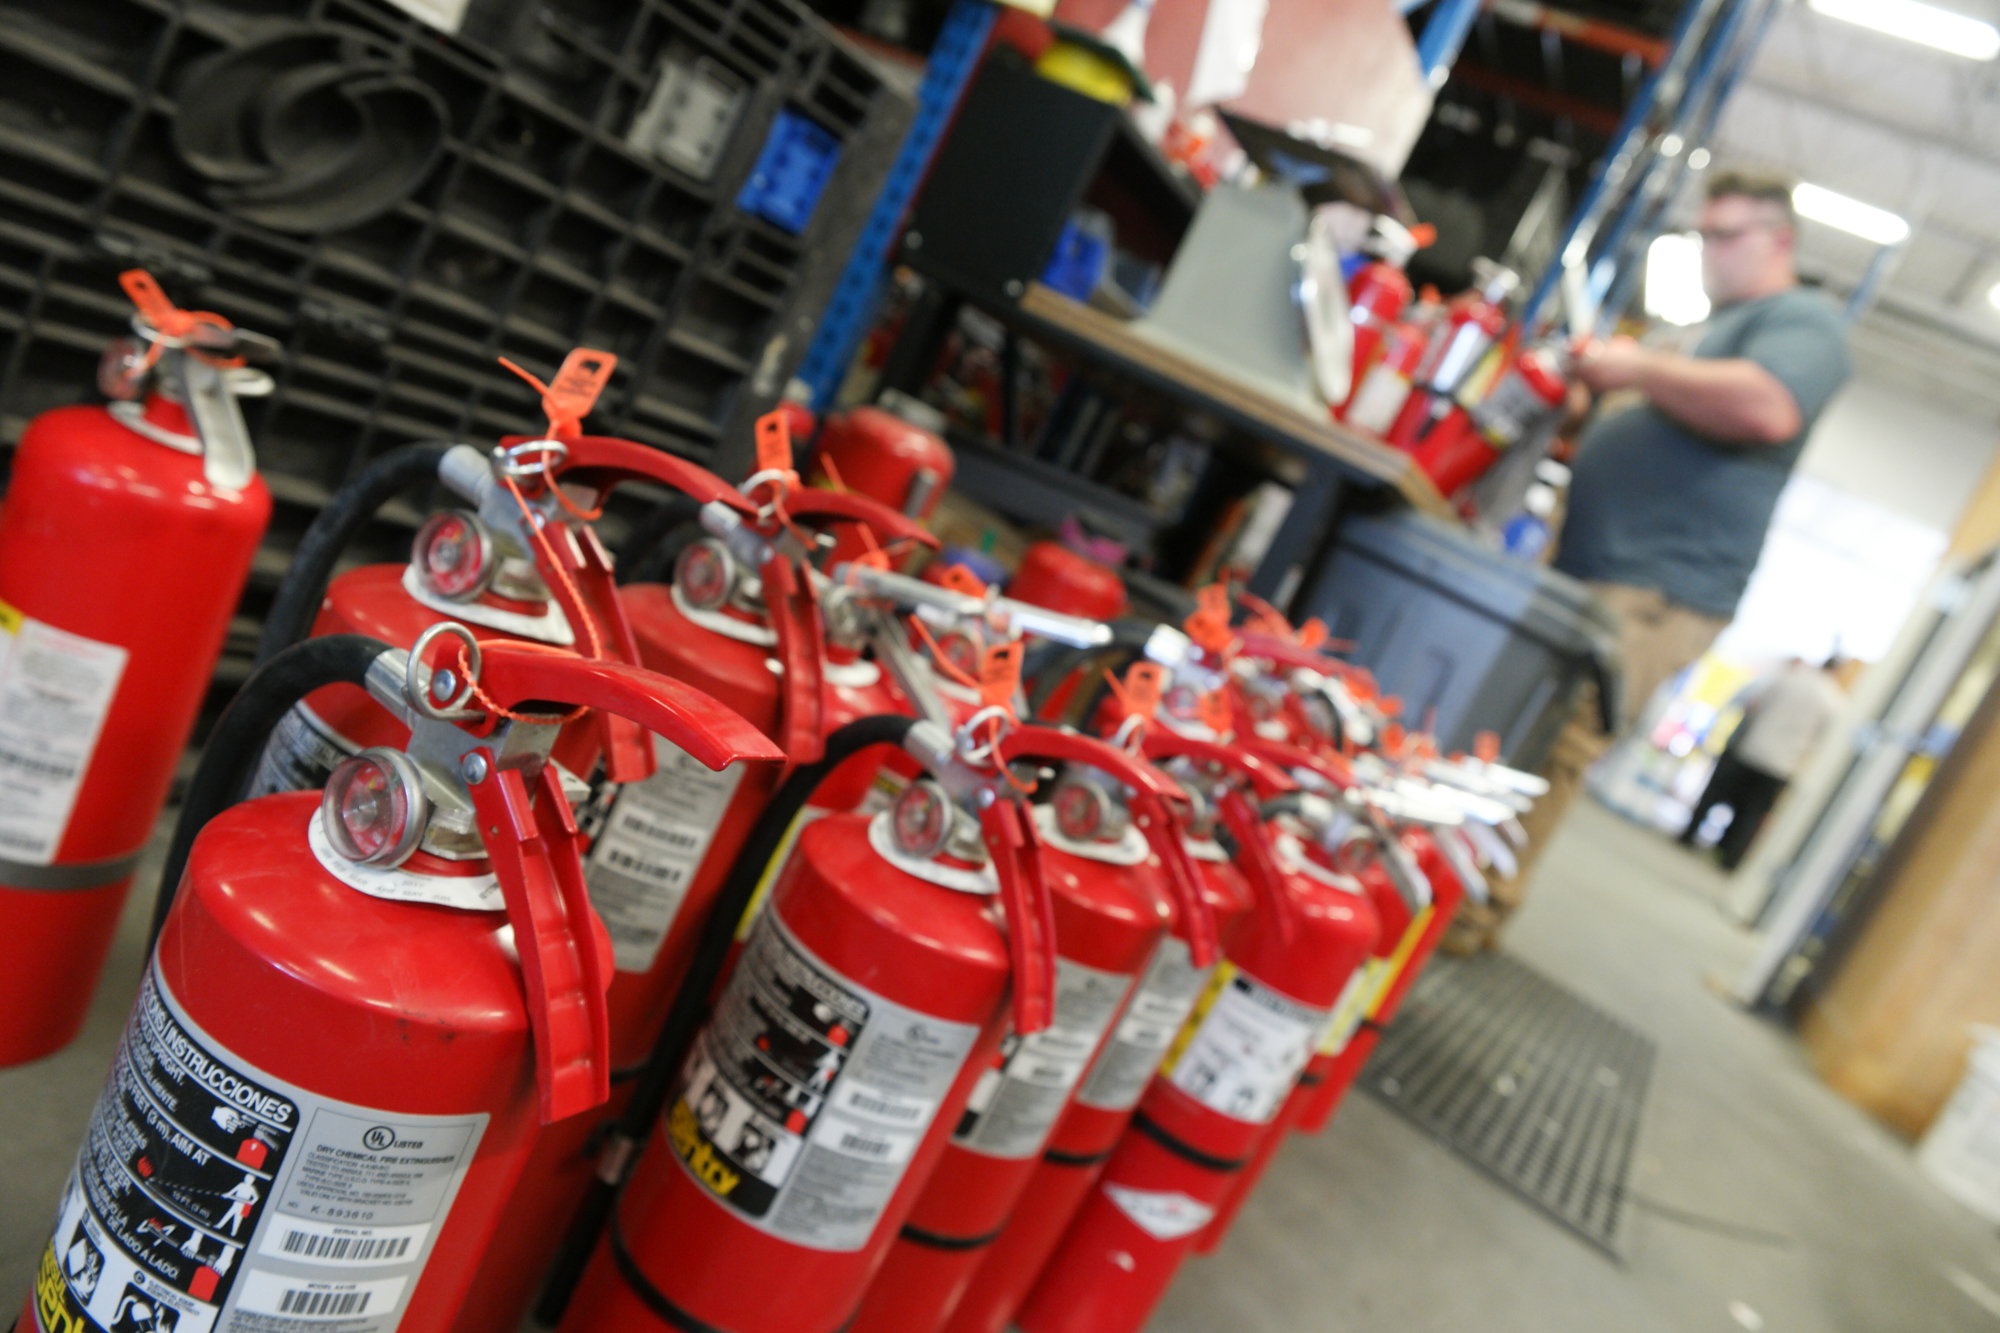 How Long Do Fire Extinguishers Last?